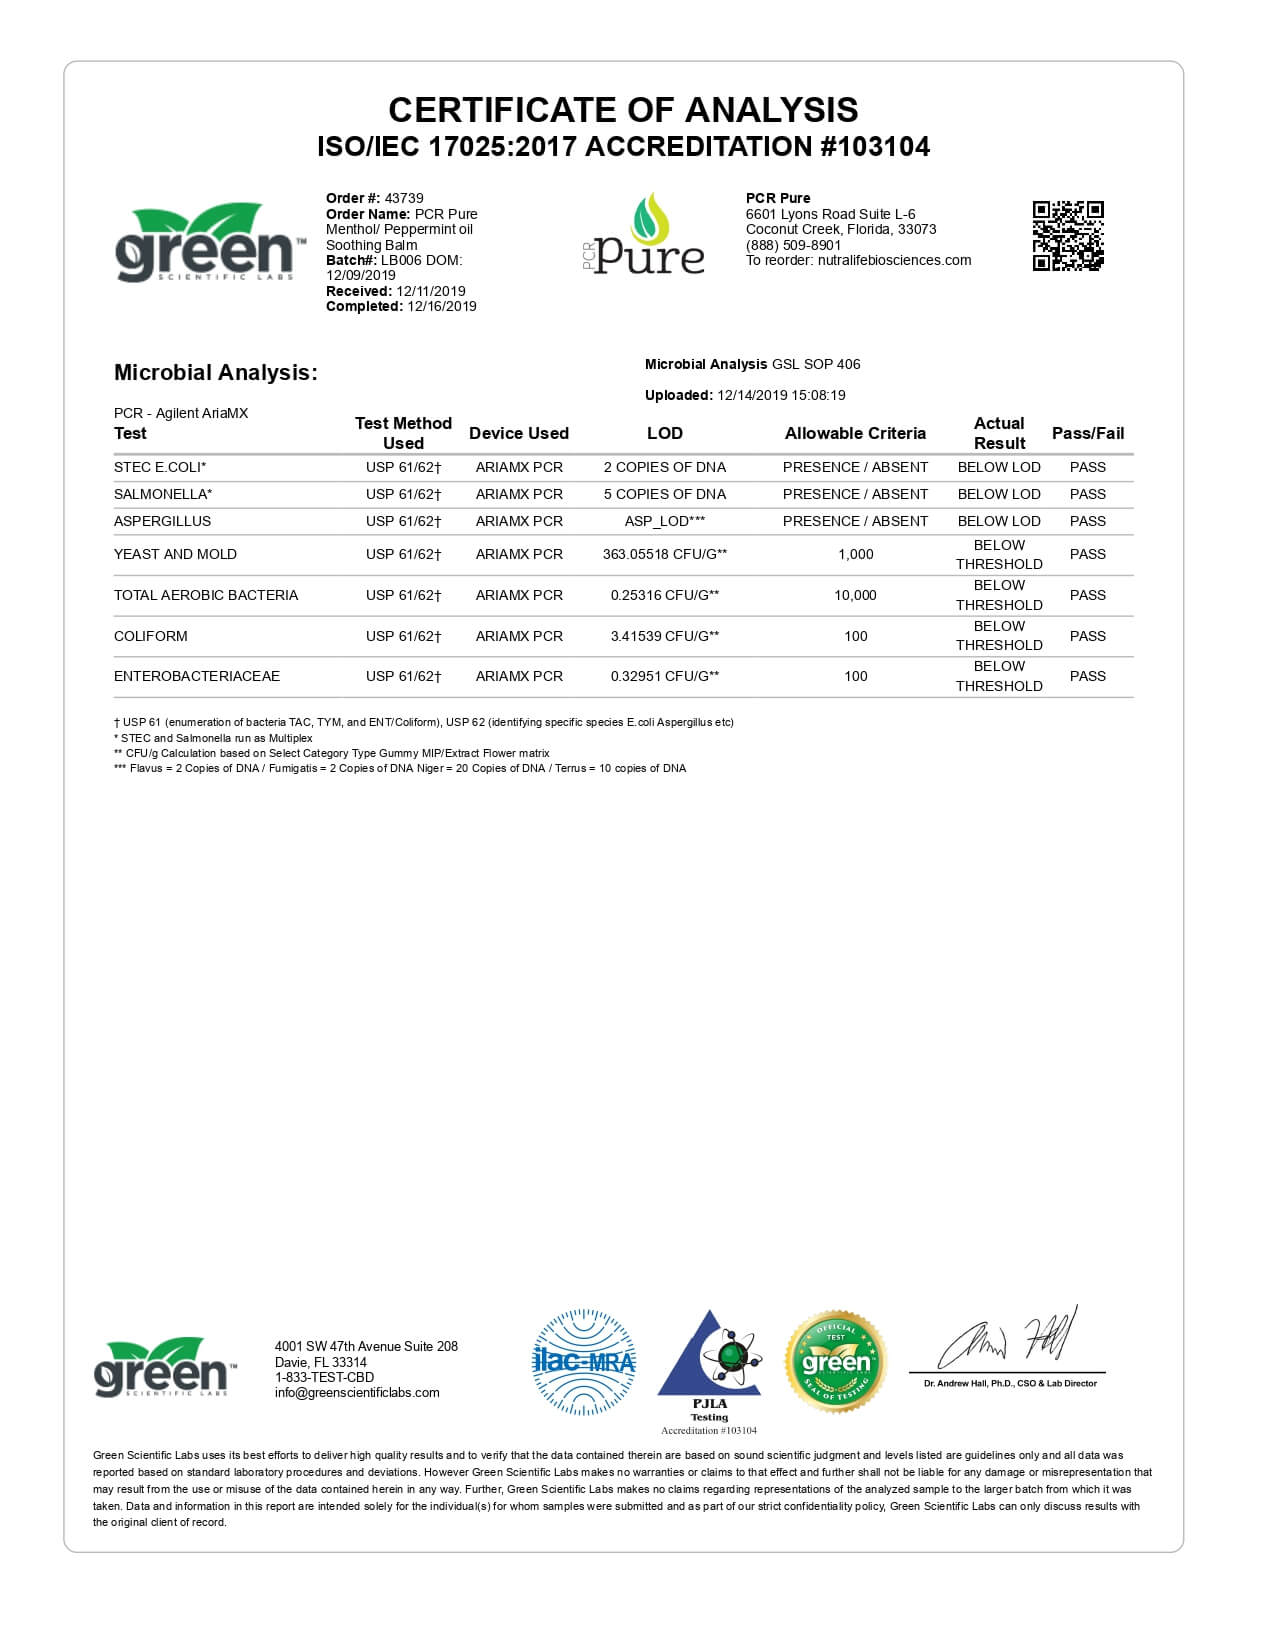 PCR Pure CBD Topical Menthol & Peppermint Full Spectrum Soothing Balm Lab Report